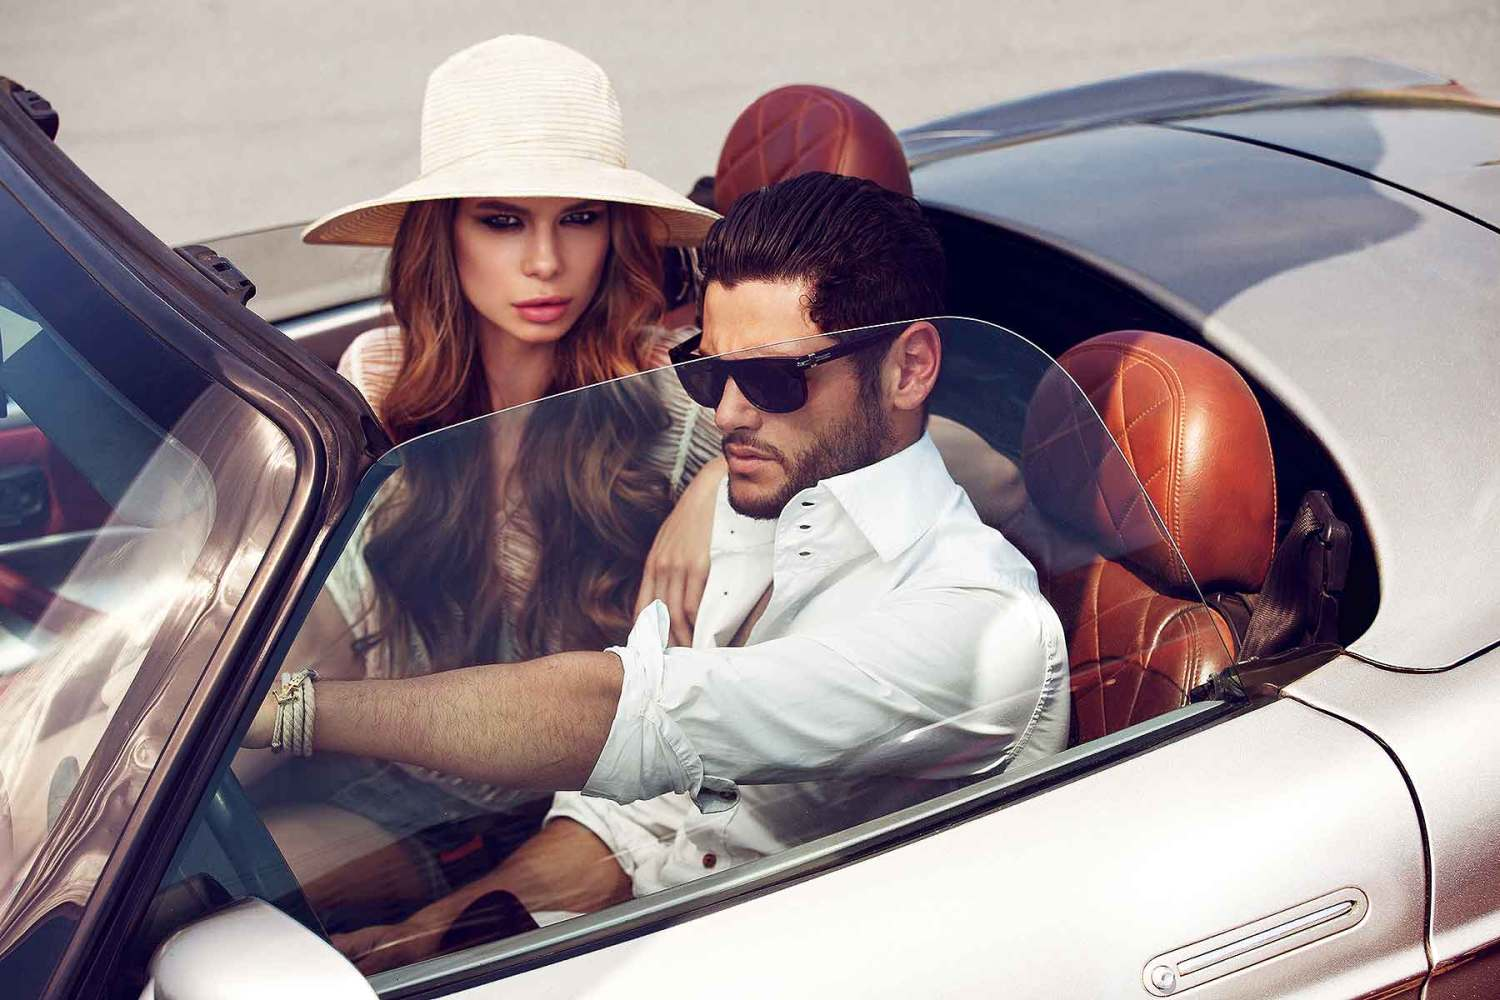 A beautiful couple driving a sports car